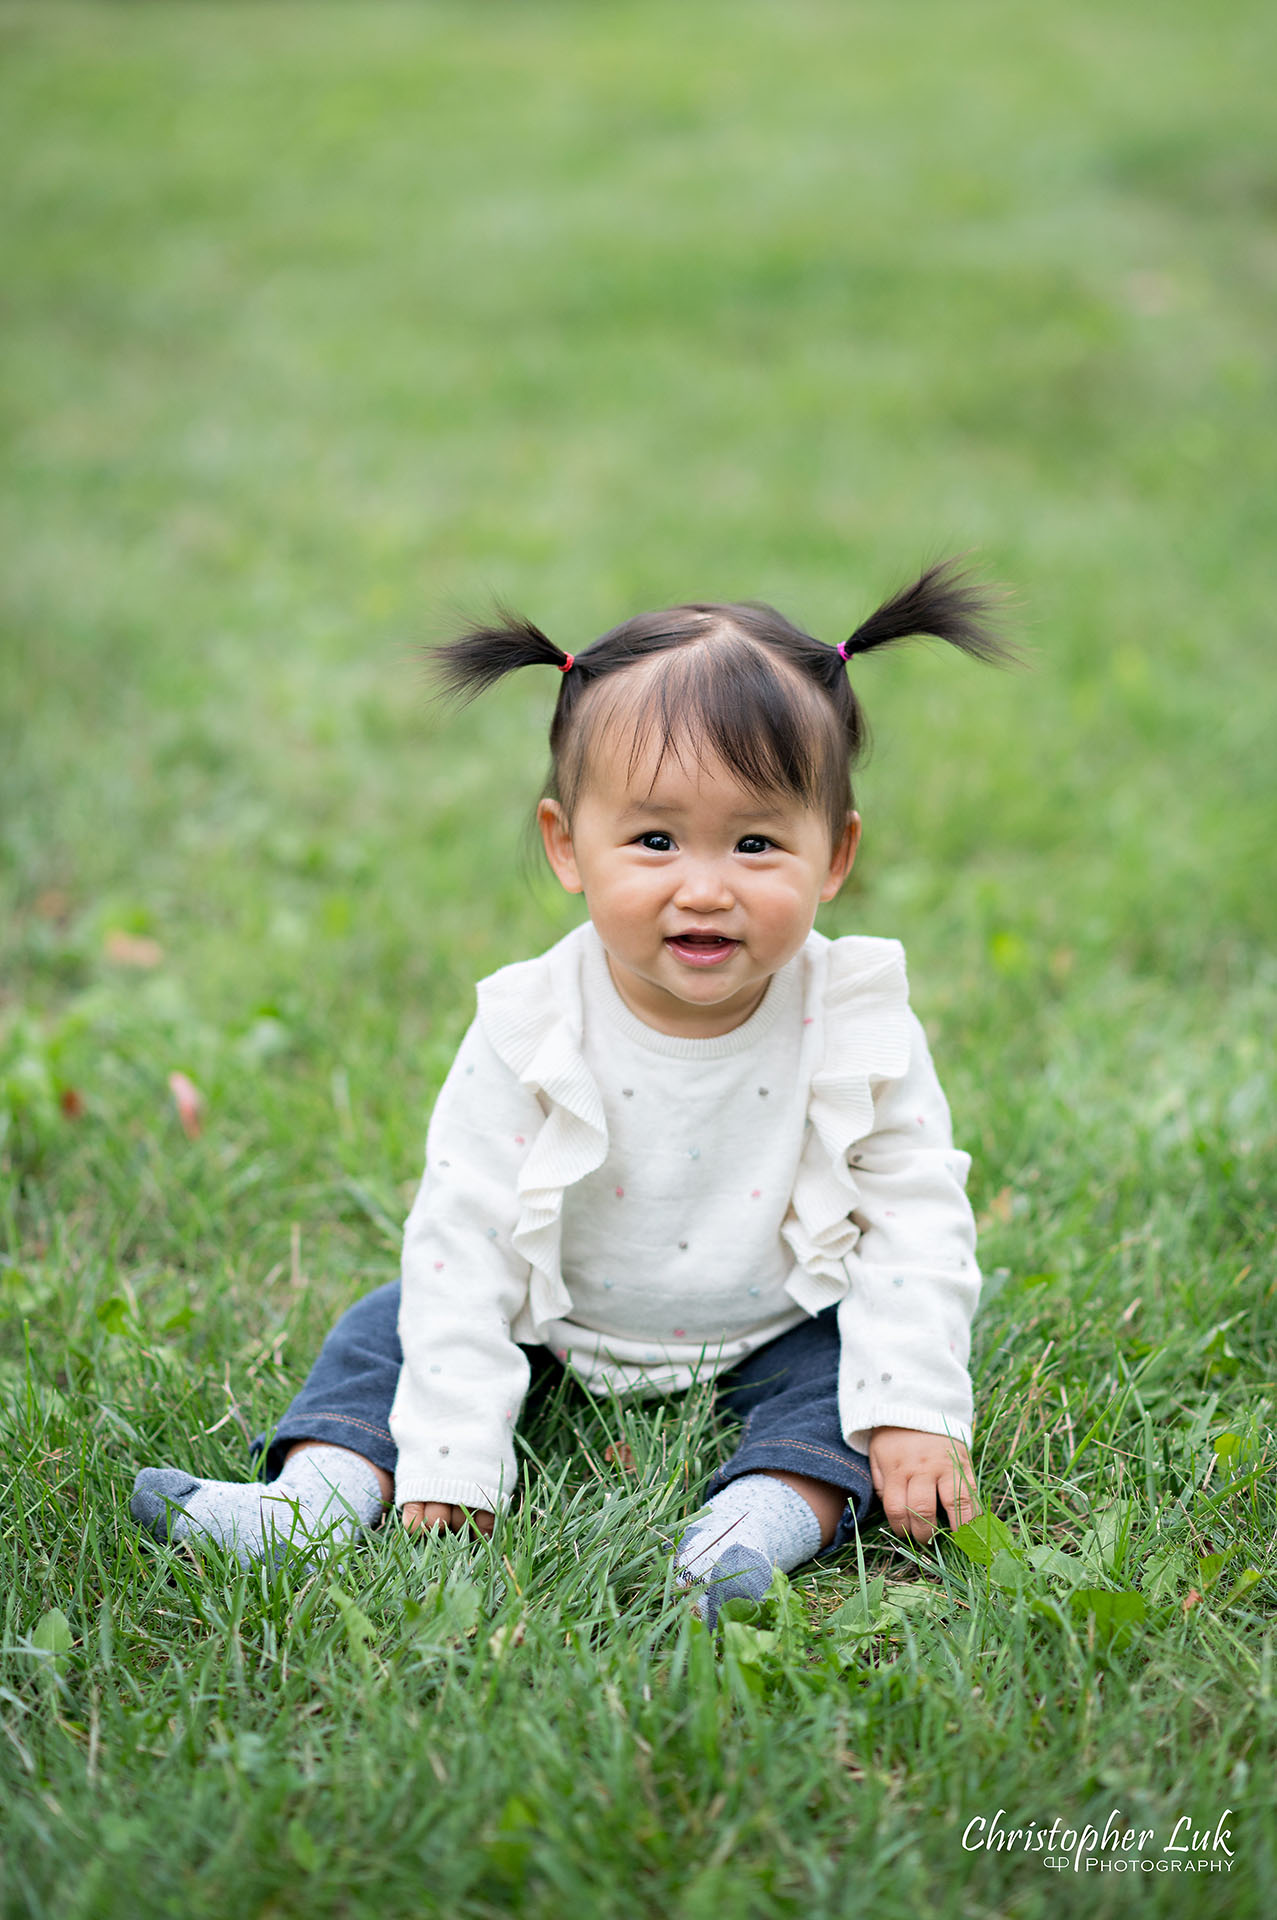 Christopher Luk Toronto Markham Family Wedding Photographer Baby Girl Natural Candid Photojournalistic Sitting Smiling Happy Pig Tails Portrait